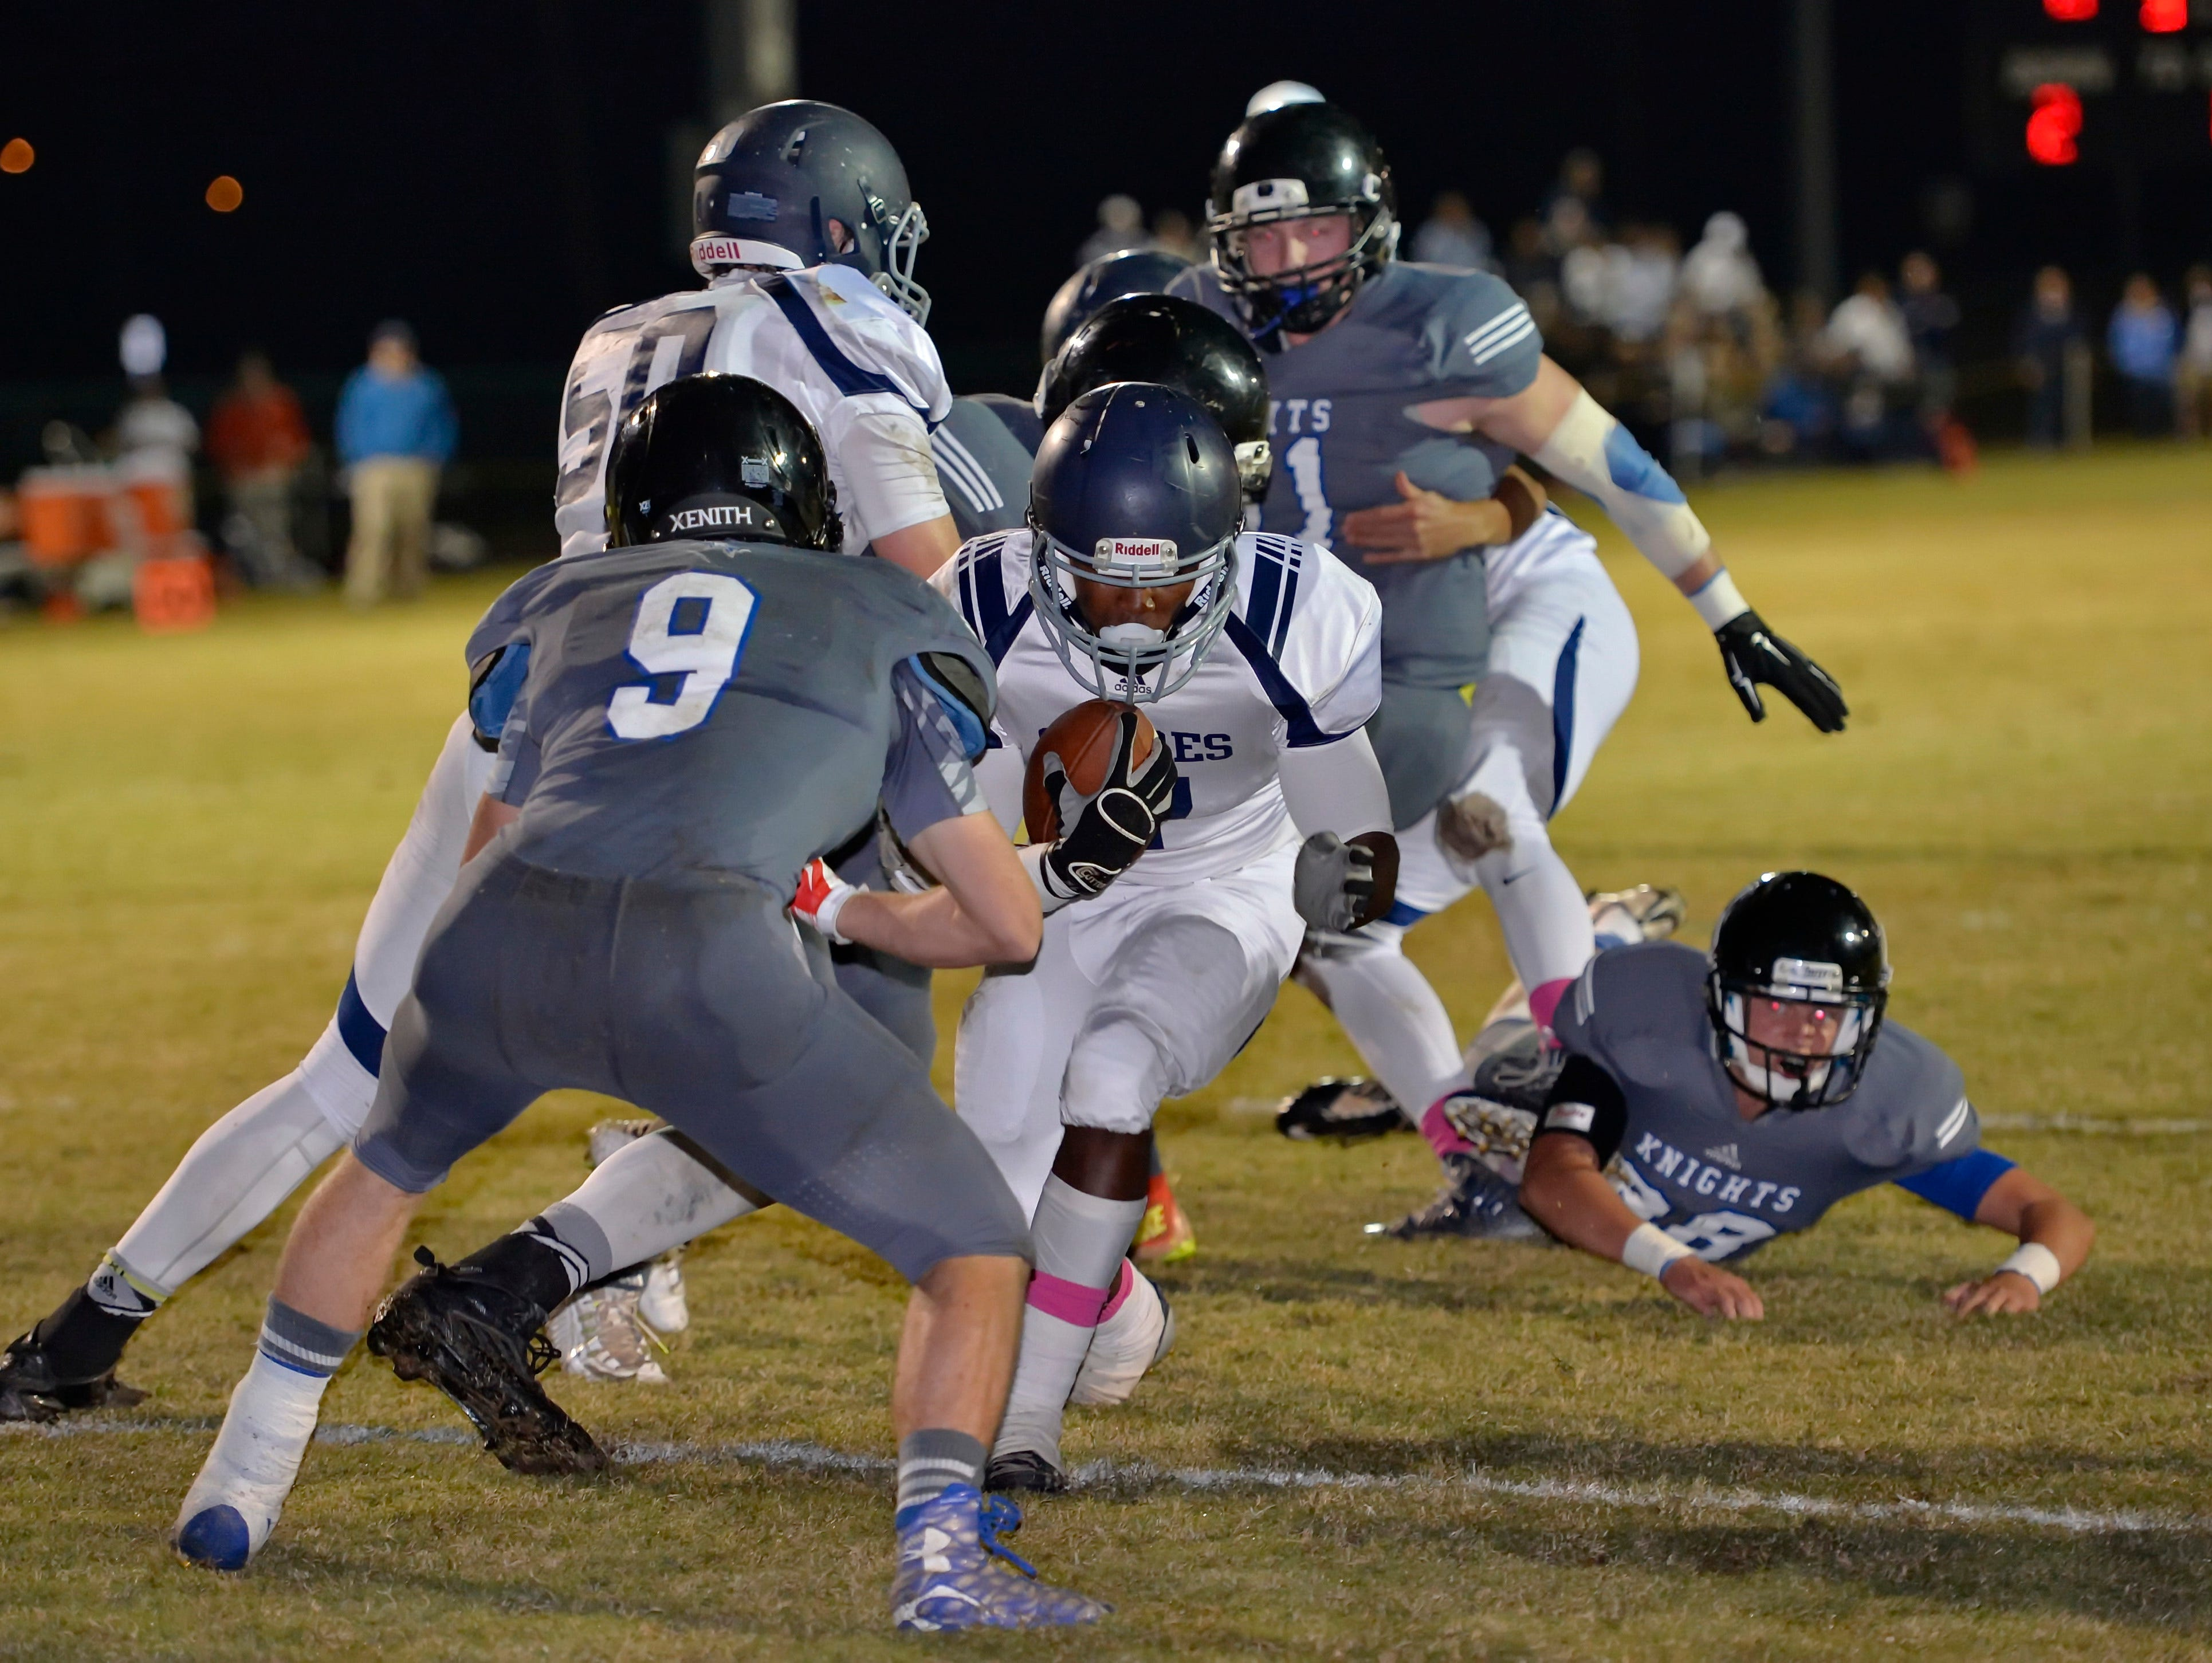 Southside Christian's Quintyn Reeder scores a first half touchdown against St. Joseph's Friday night.